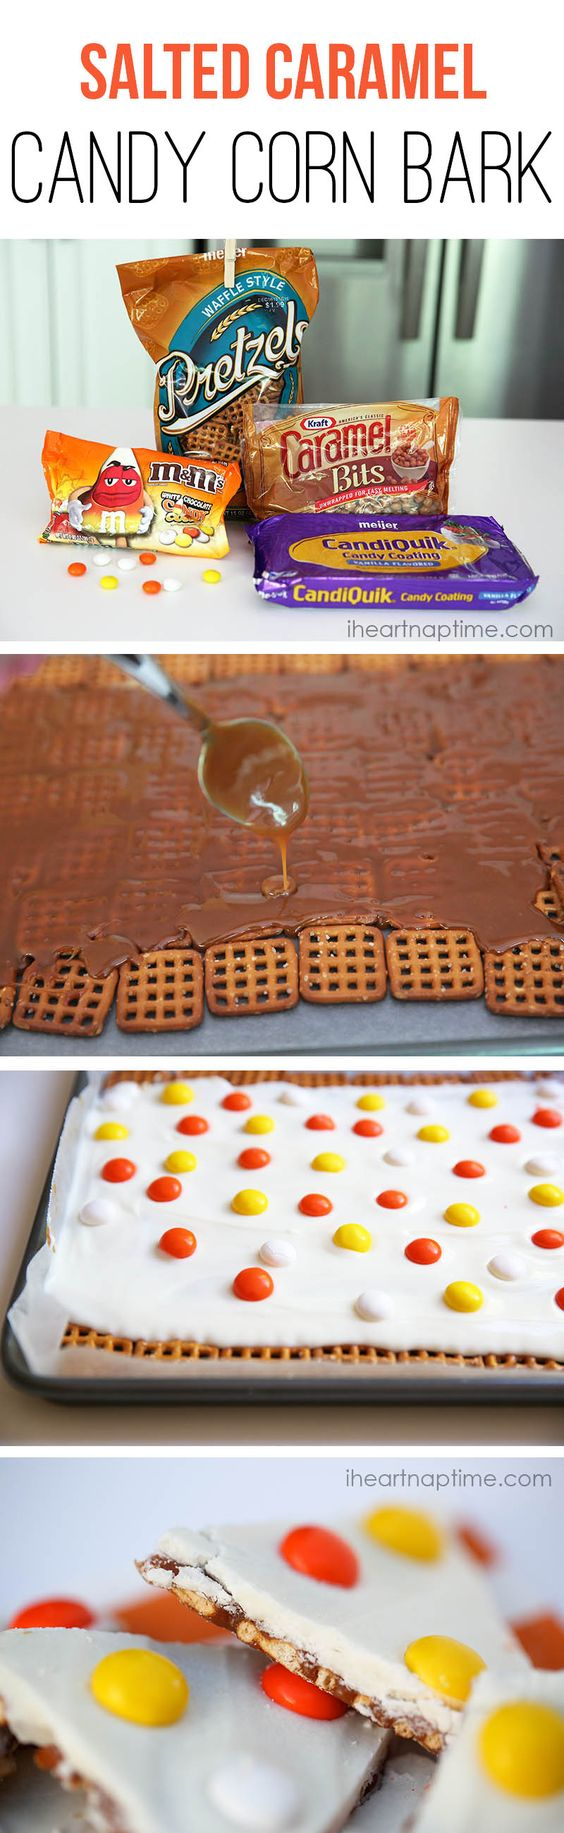 Caramel candy, Candy corn and Salted caramels on Pinterest